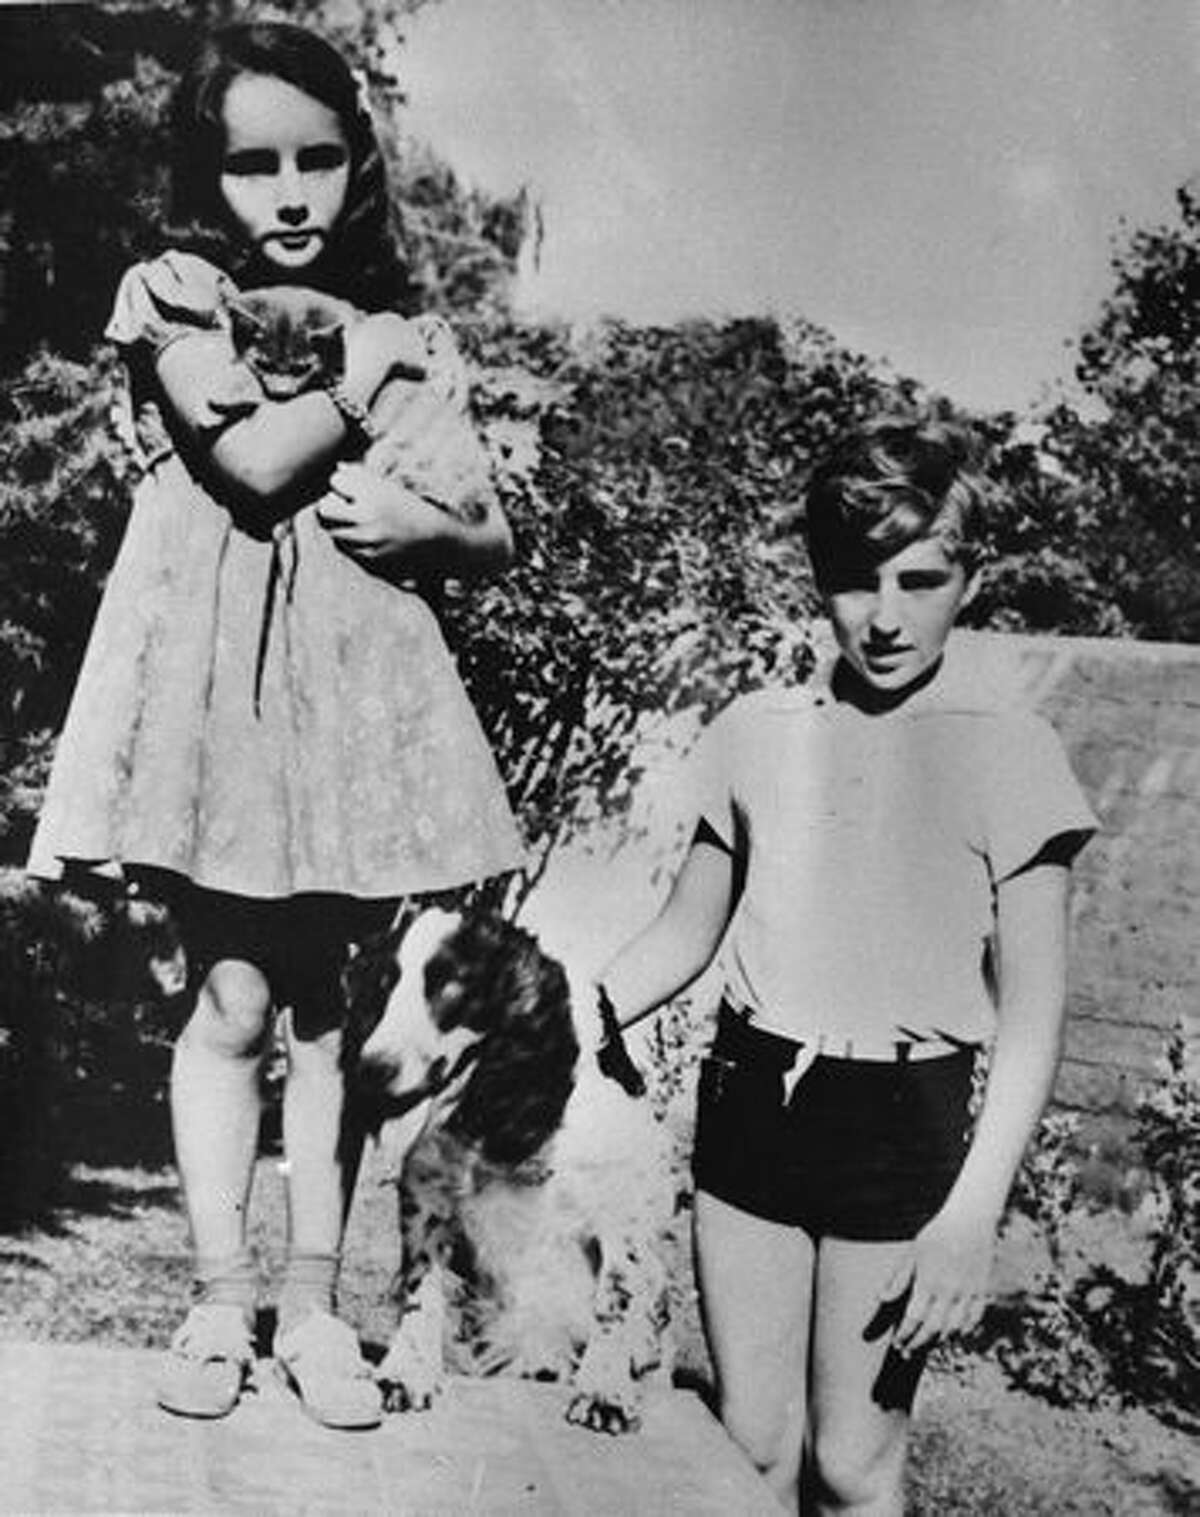 Young actress Elizabeth Taylor stands with her brother, Howard, and their pets in a garden, circa 1930's.